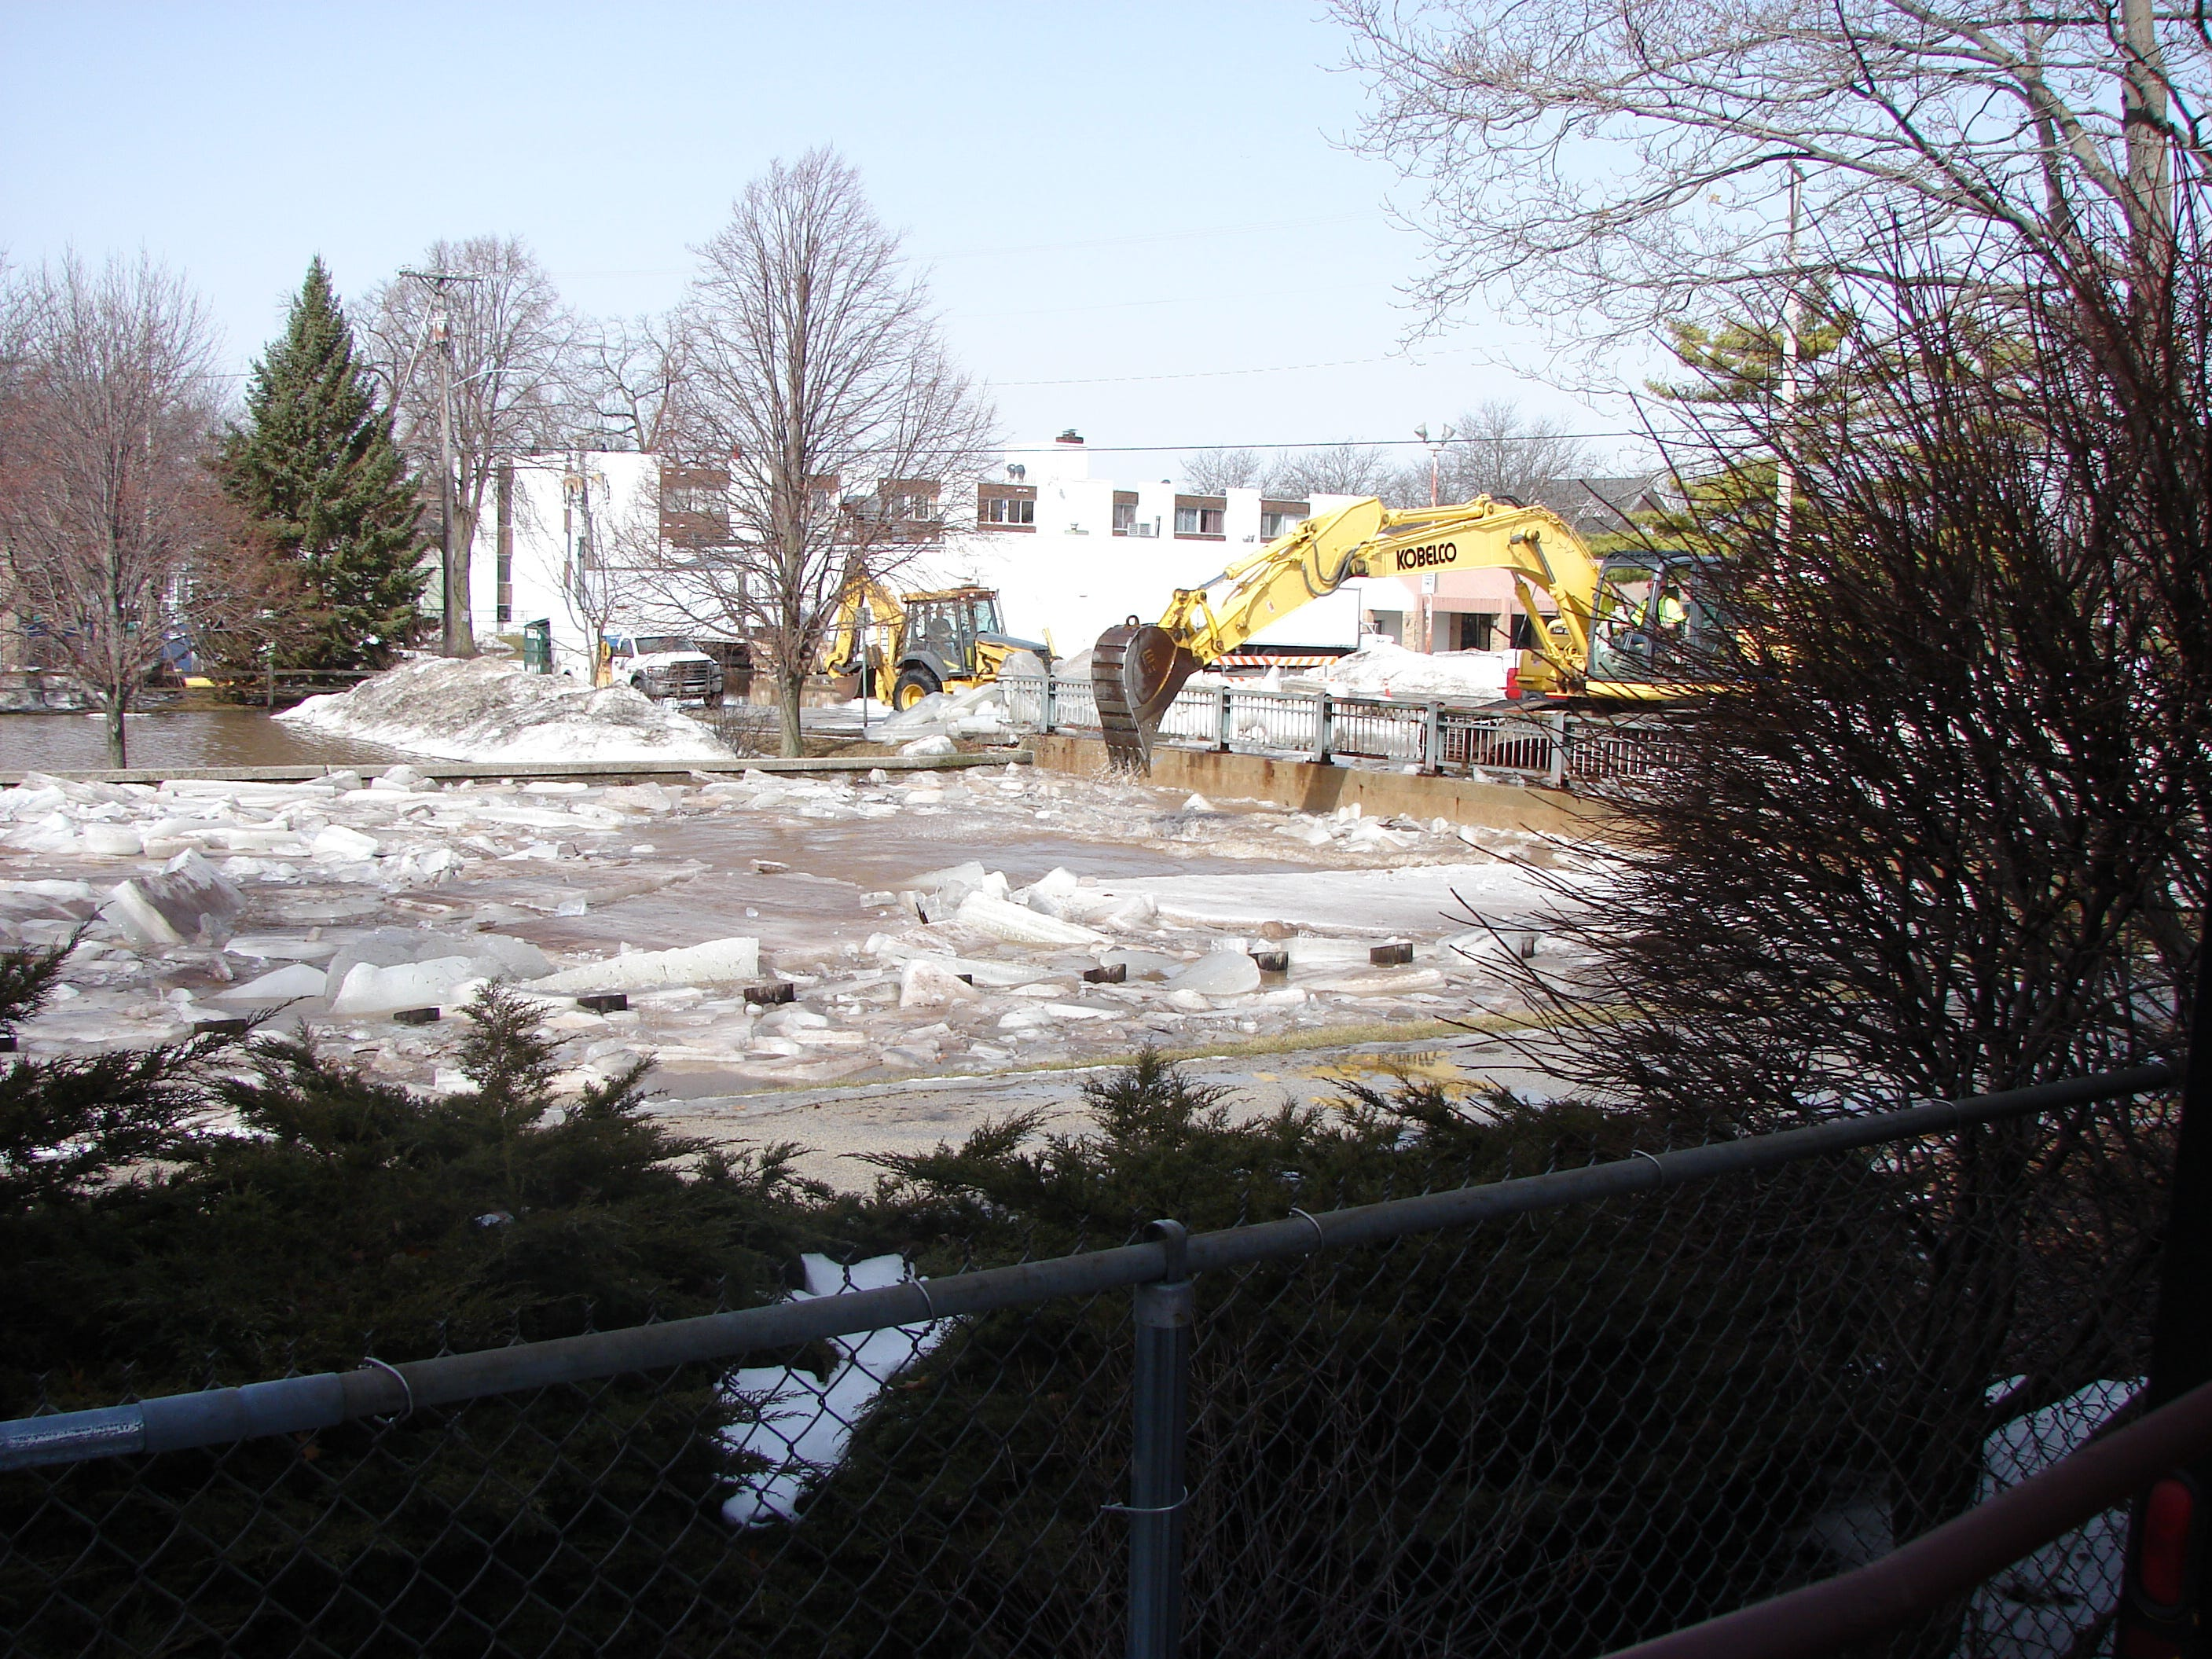 City crews set up heavy machinery Thursday on the East First Street bridge over the Fond du Lac River, in an effort to clear an ice jam.